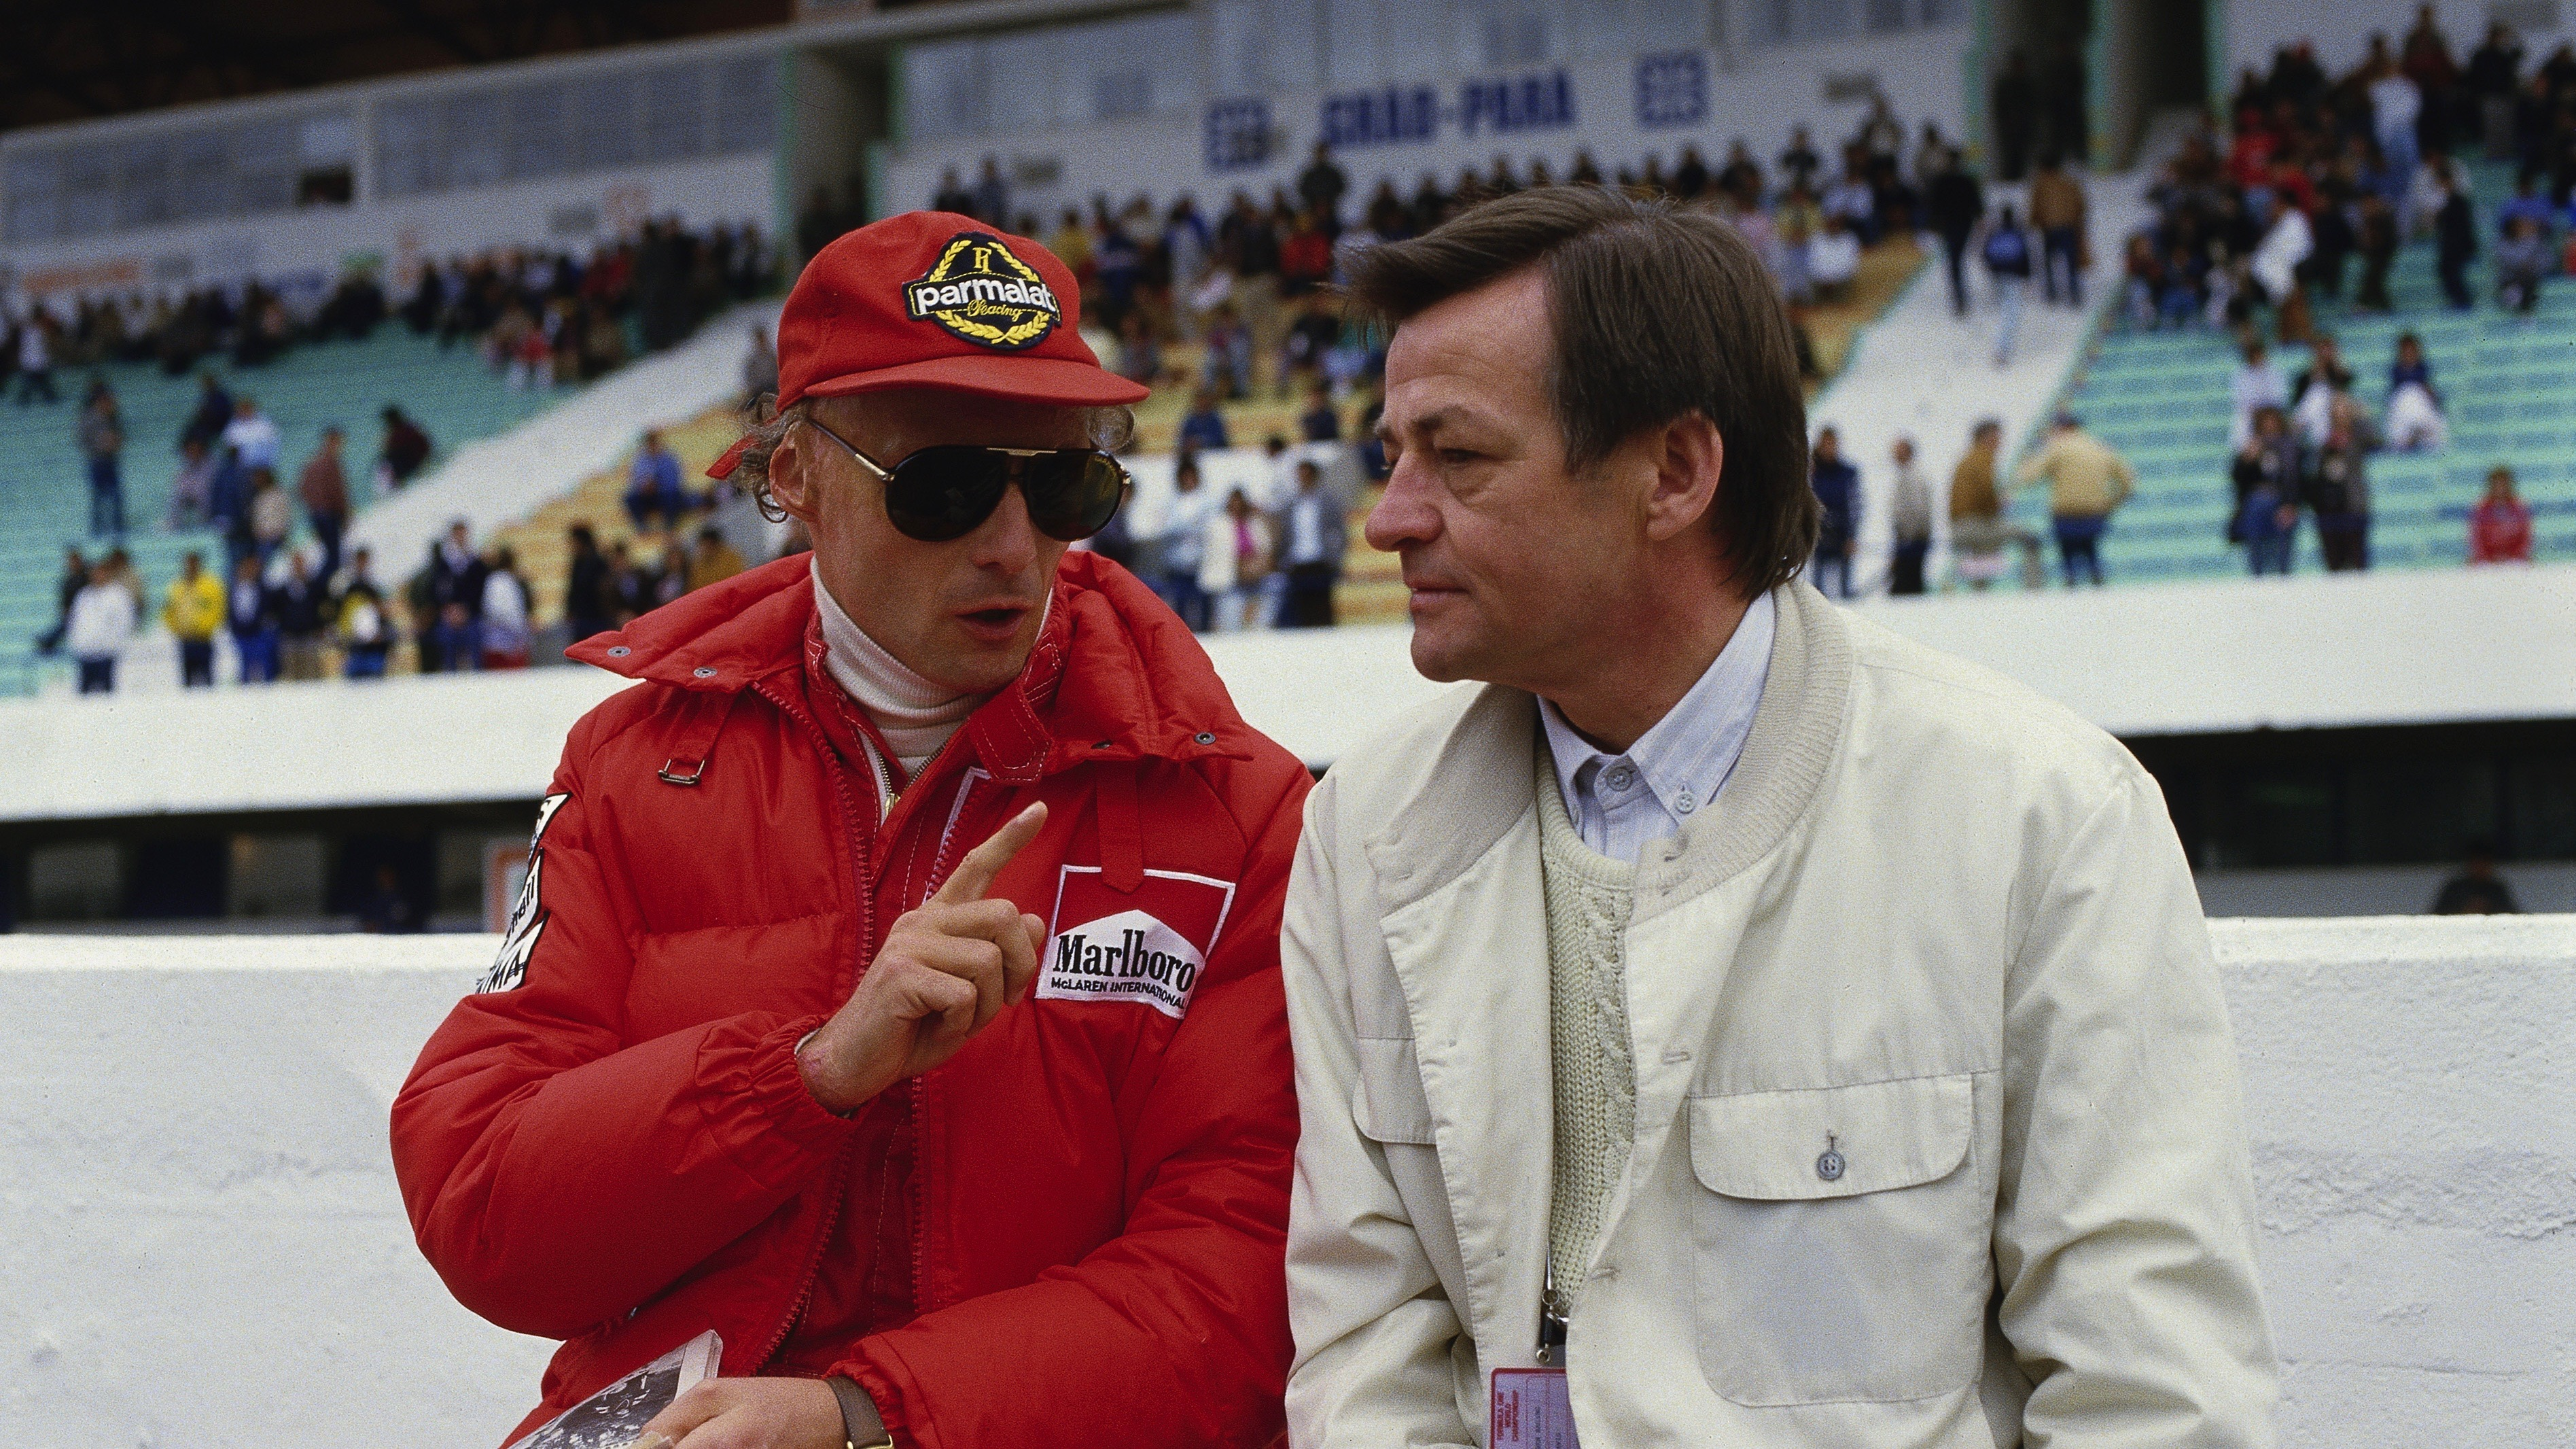 Hans Mezger and Niki Lauda